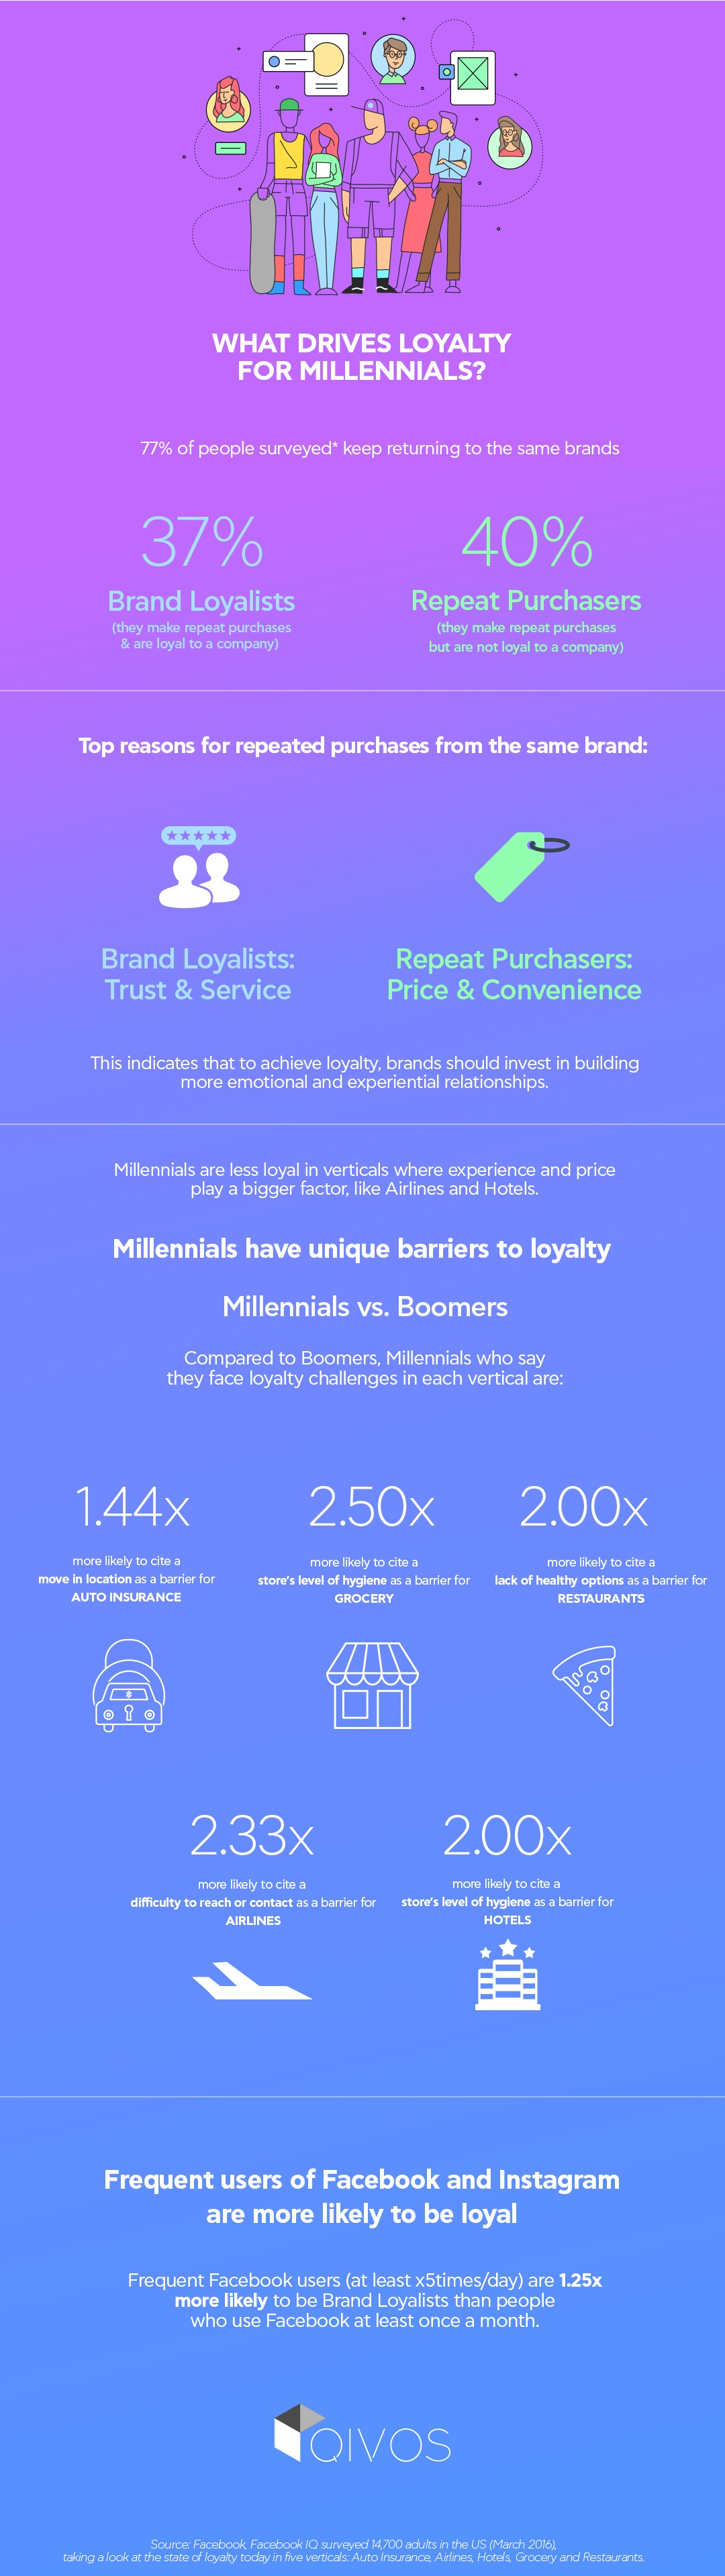 Customer loyalty infographic about millennials